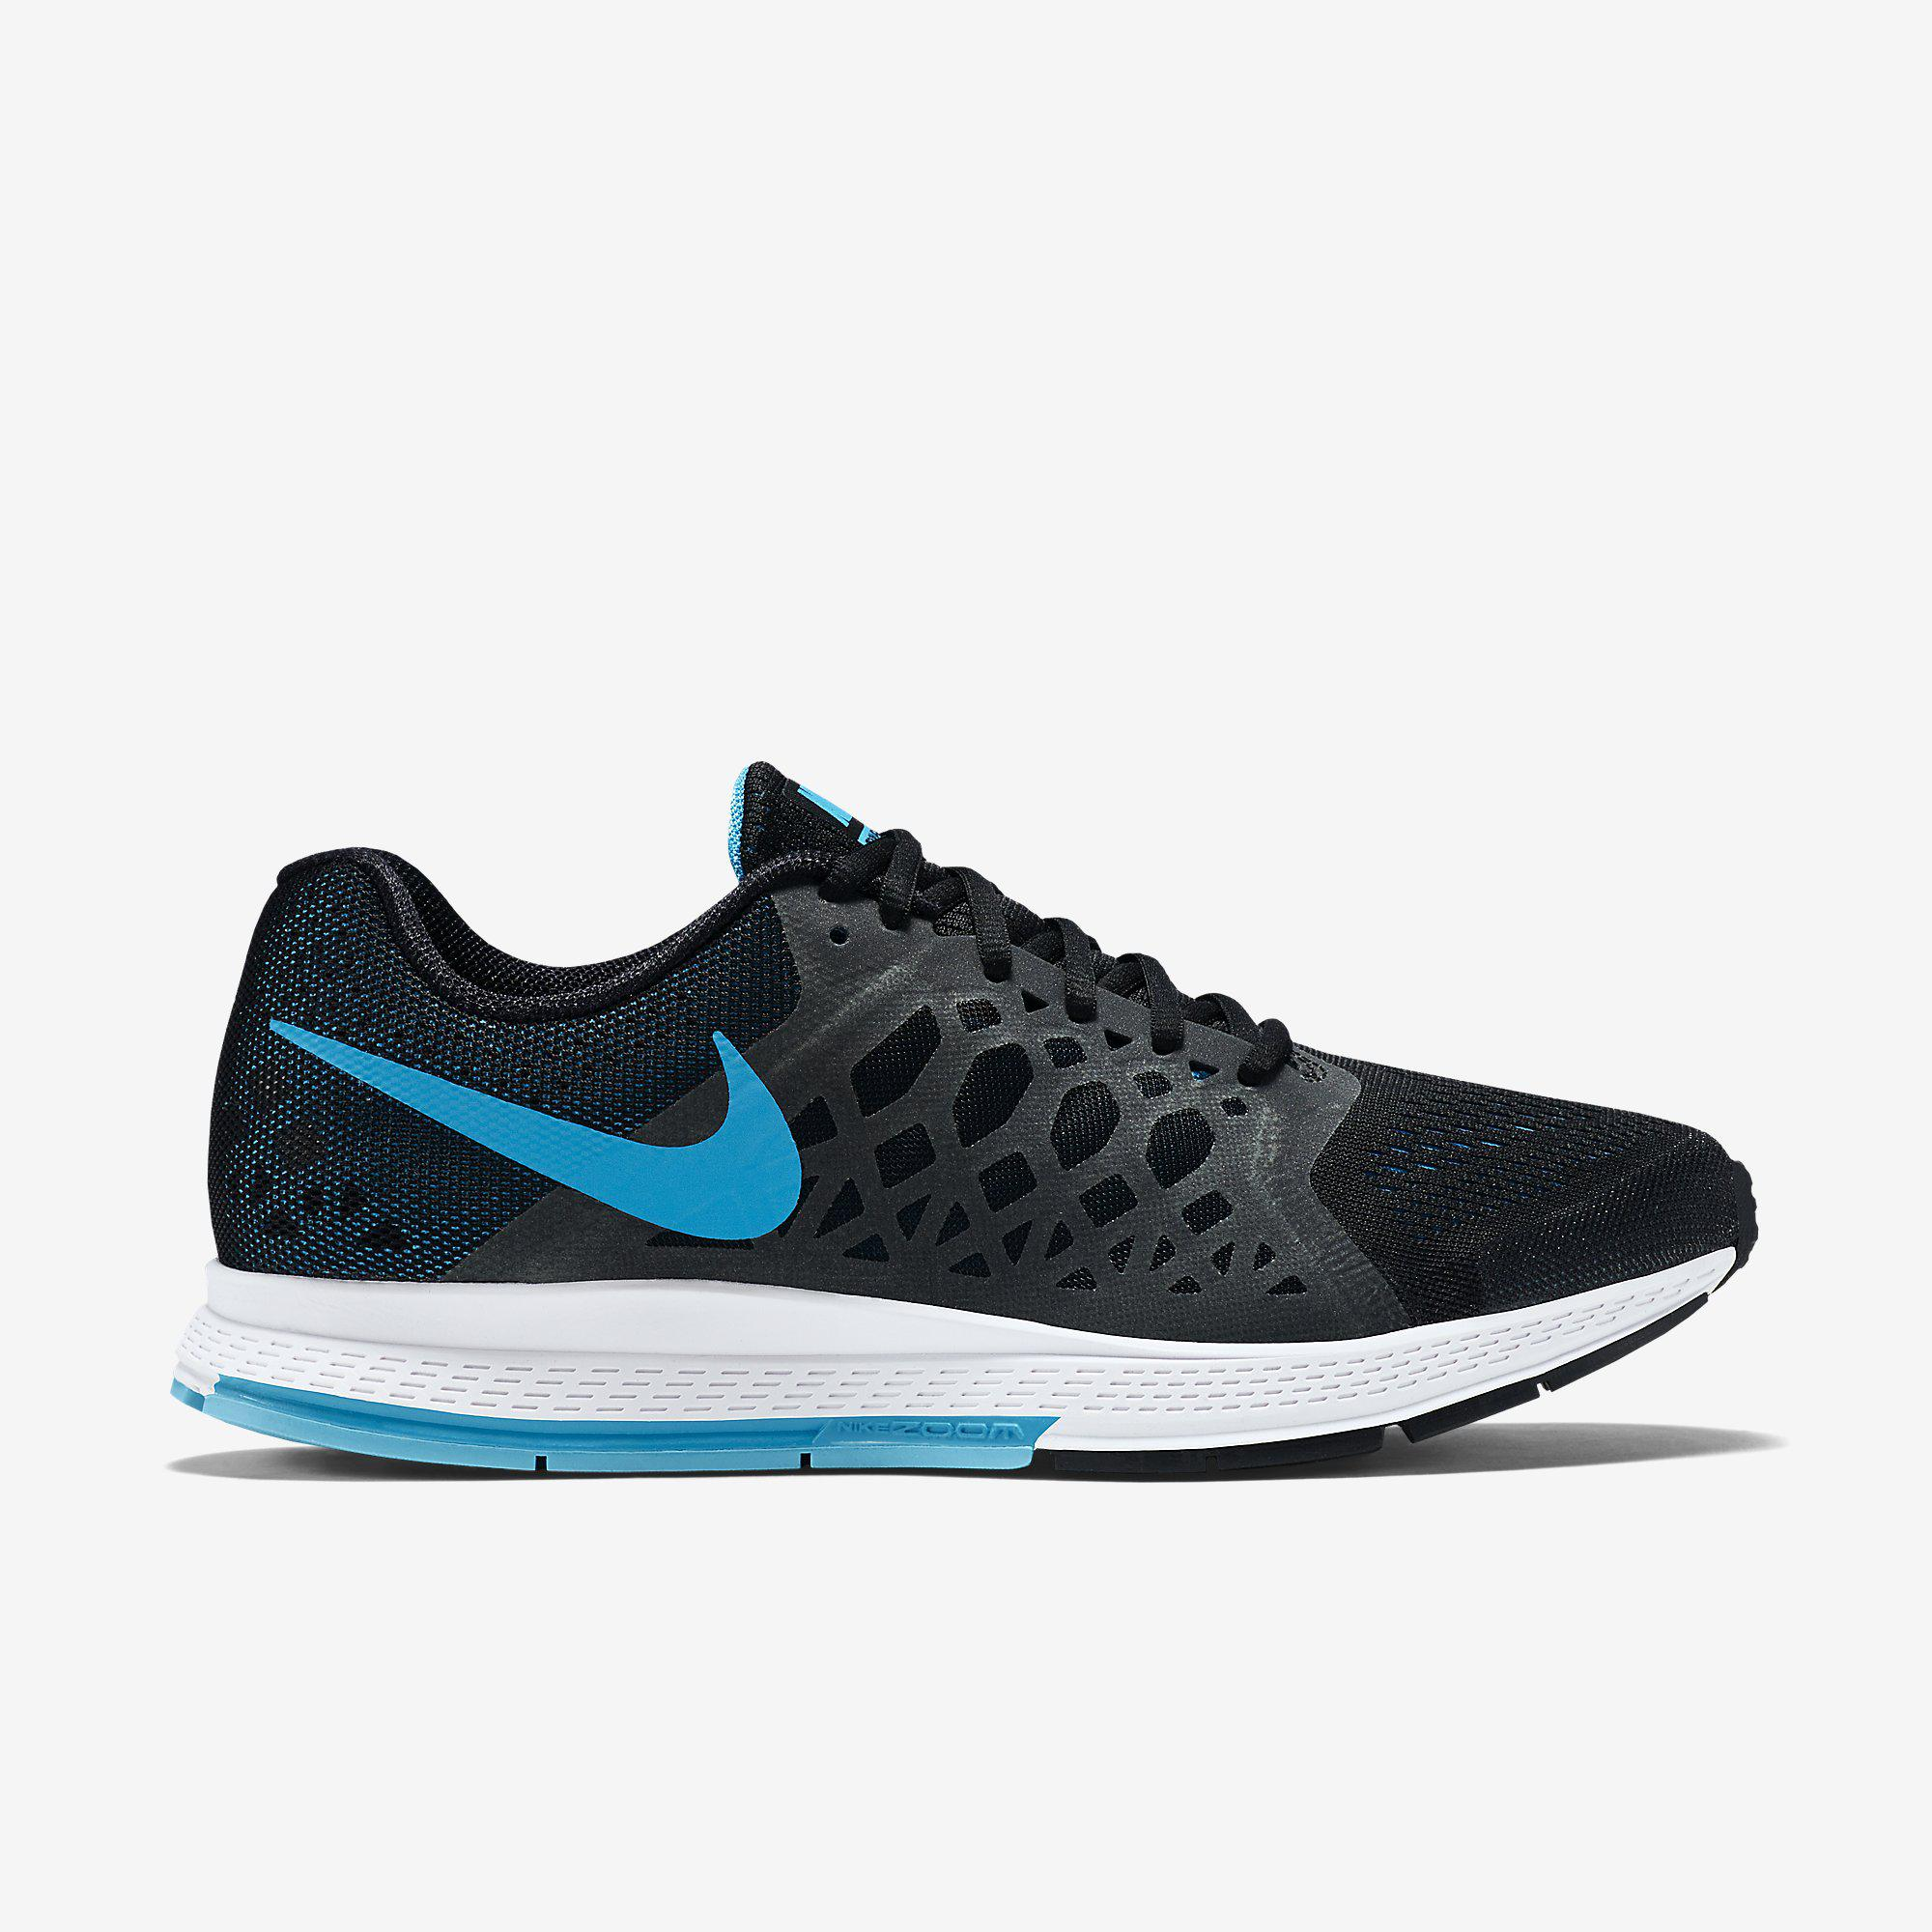 Nike Mens Air Zoom Pegasus+31 Running Shoes - Black/White/Blue